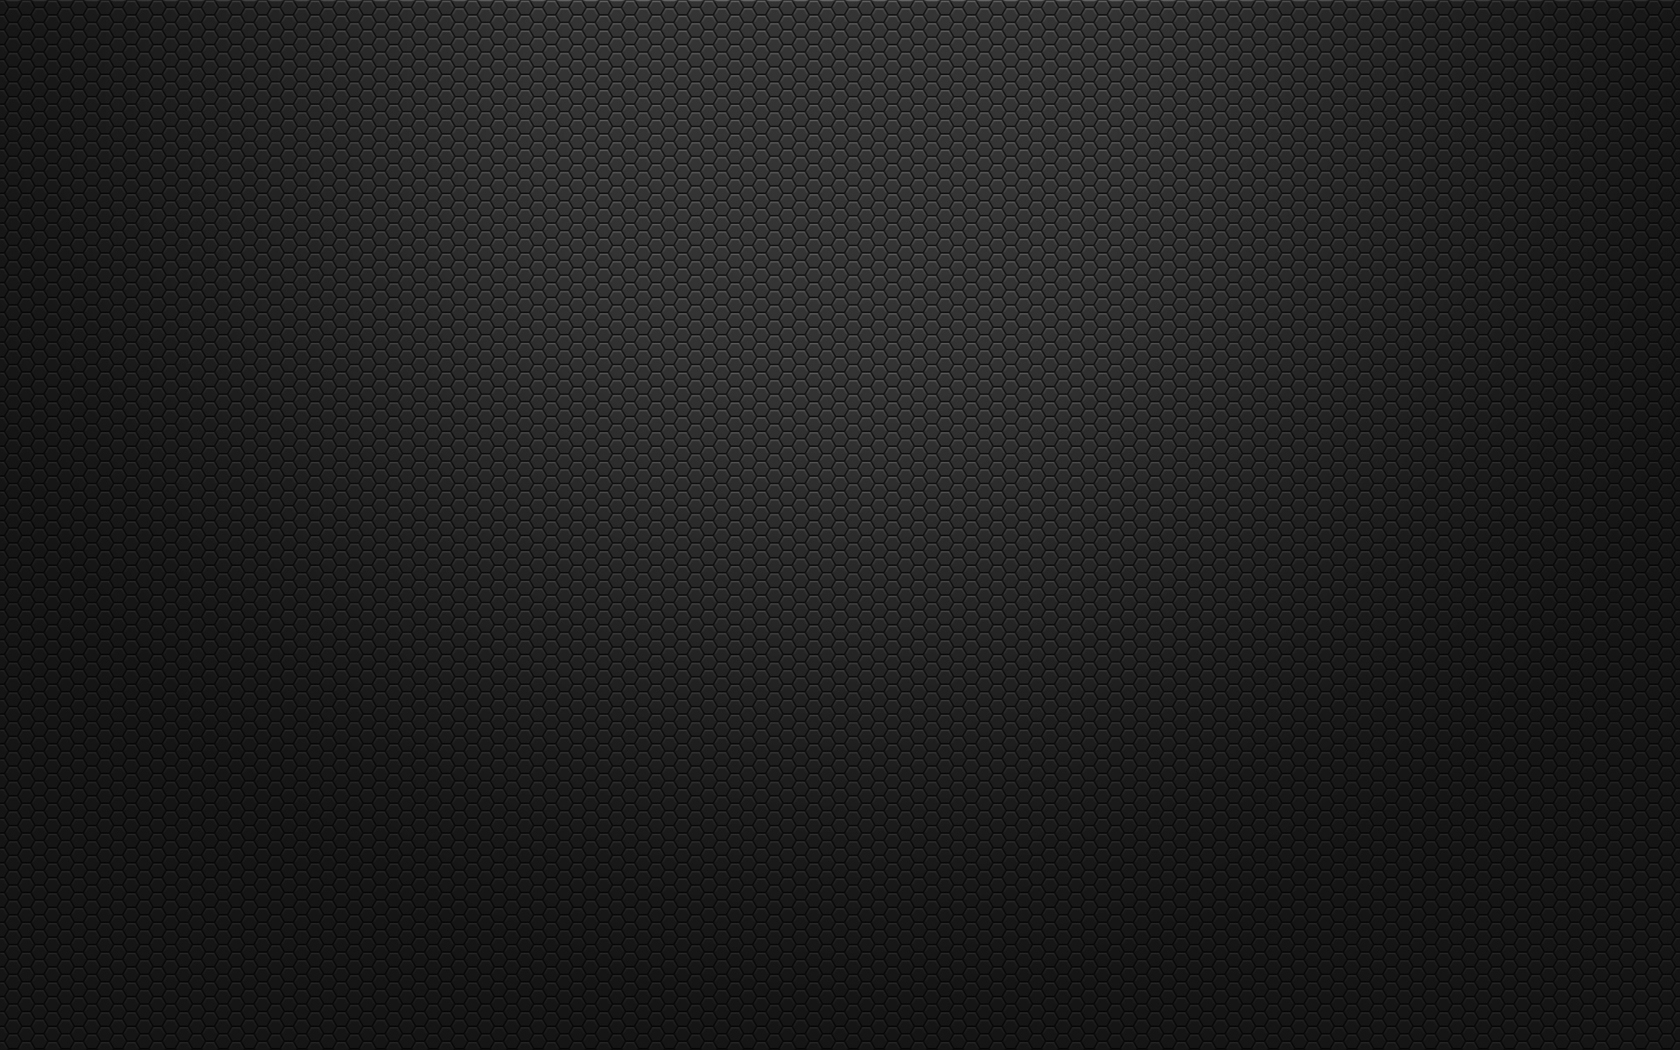 Black Wallpapers  Android Apps on Google Play 1680x1050